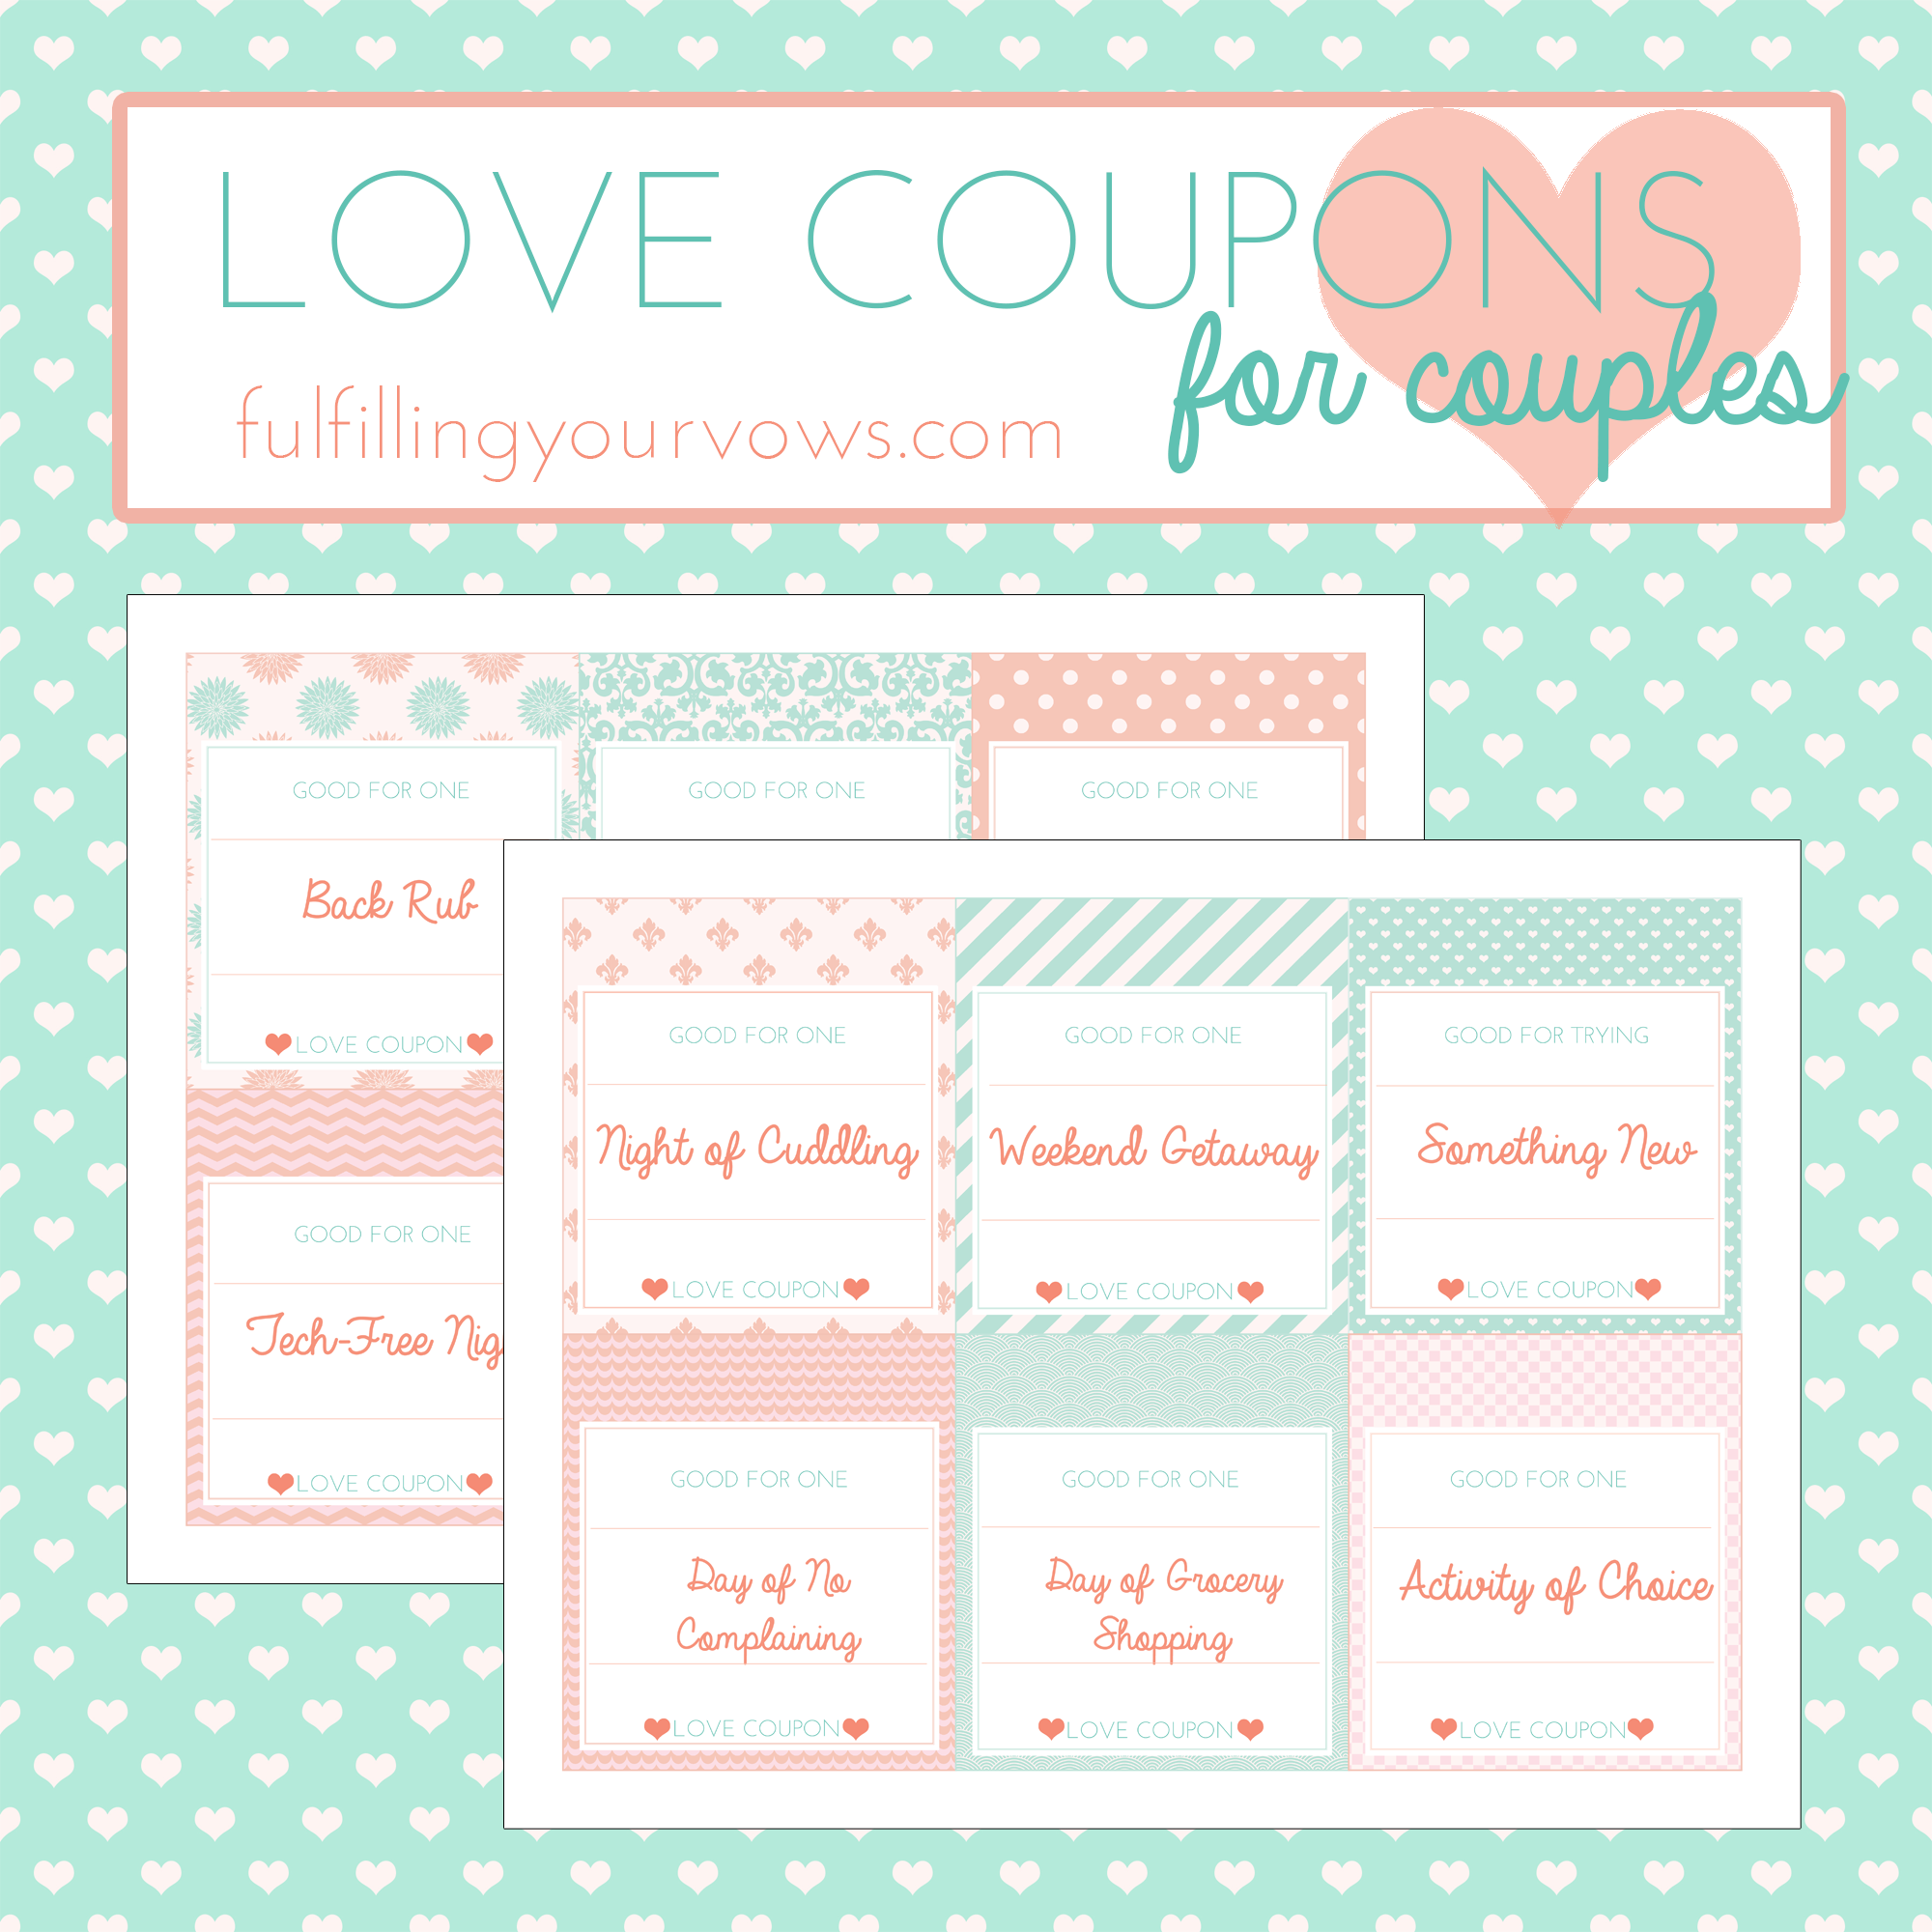 click here to grab your free love coupons